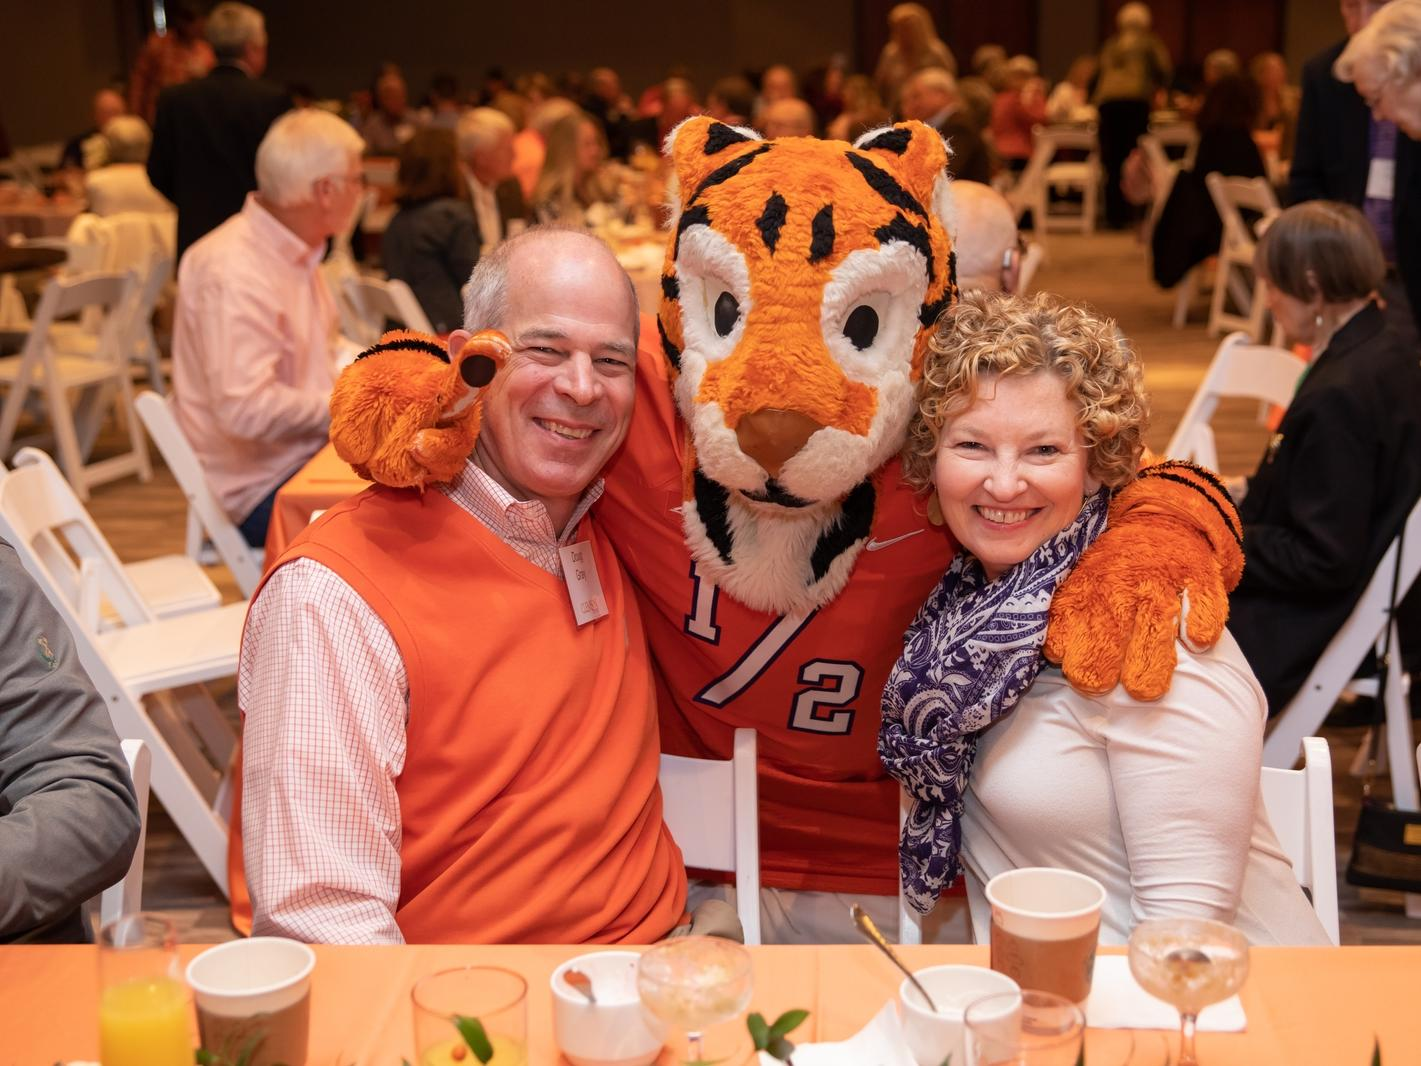 tiger mascot posing with couple